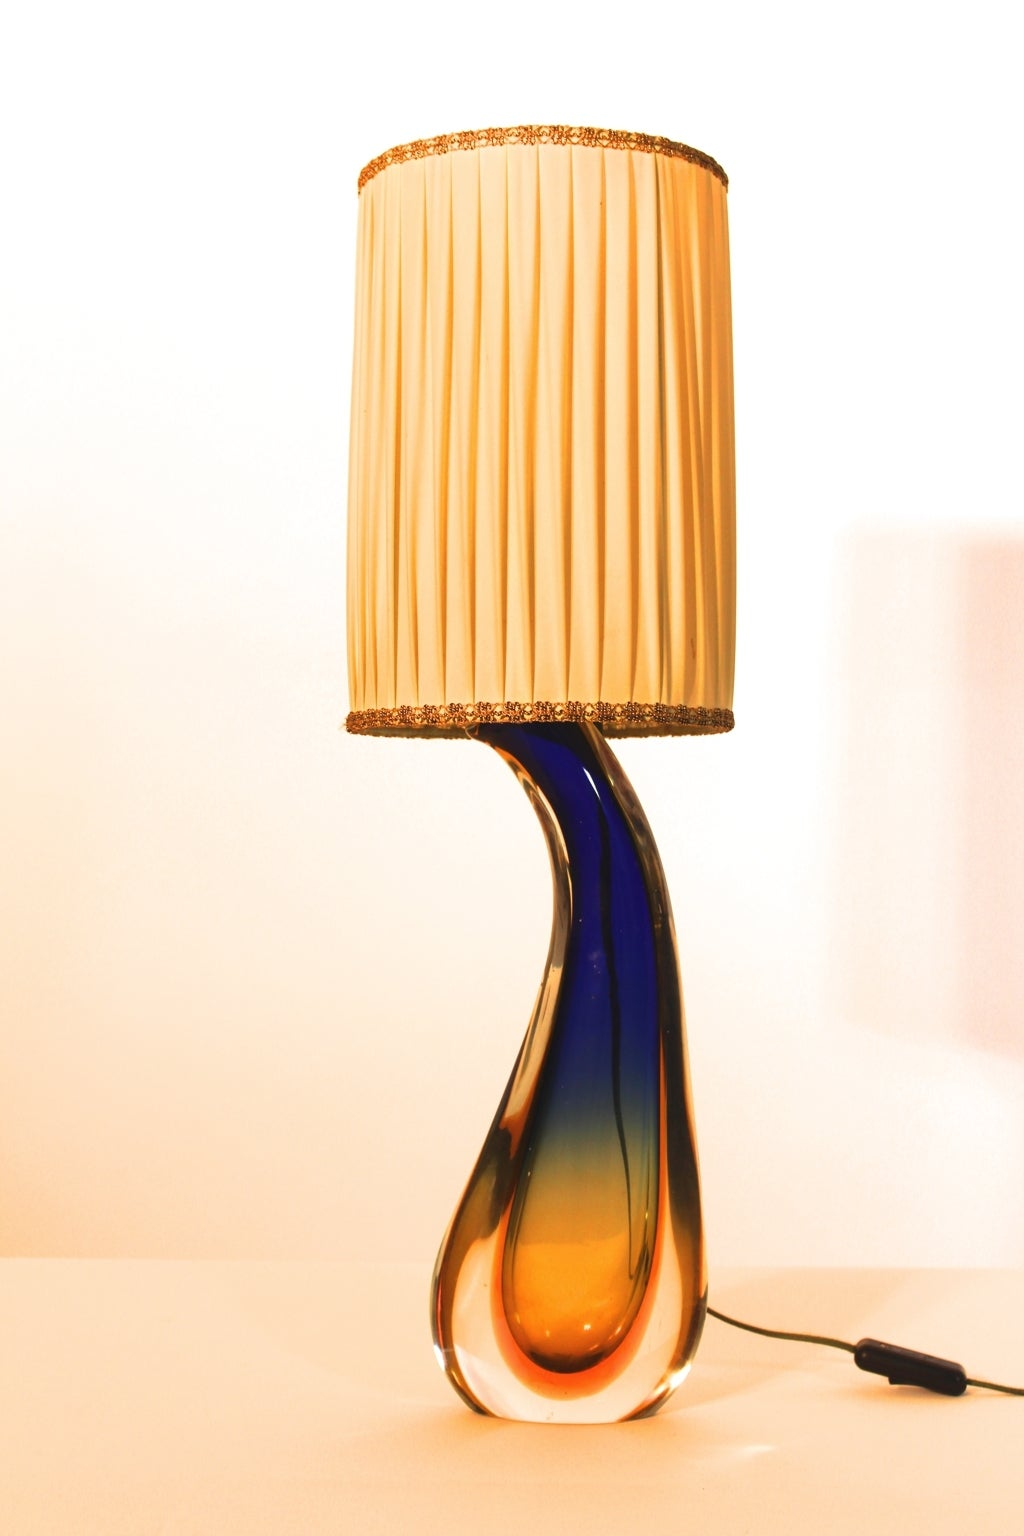 Poli Italy  City new picture : ... Glass Table Light by Flavio Poli, Italy, 1950s For Sale at 1stdibs